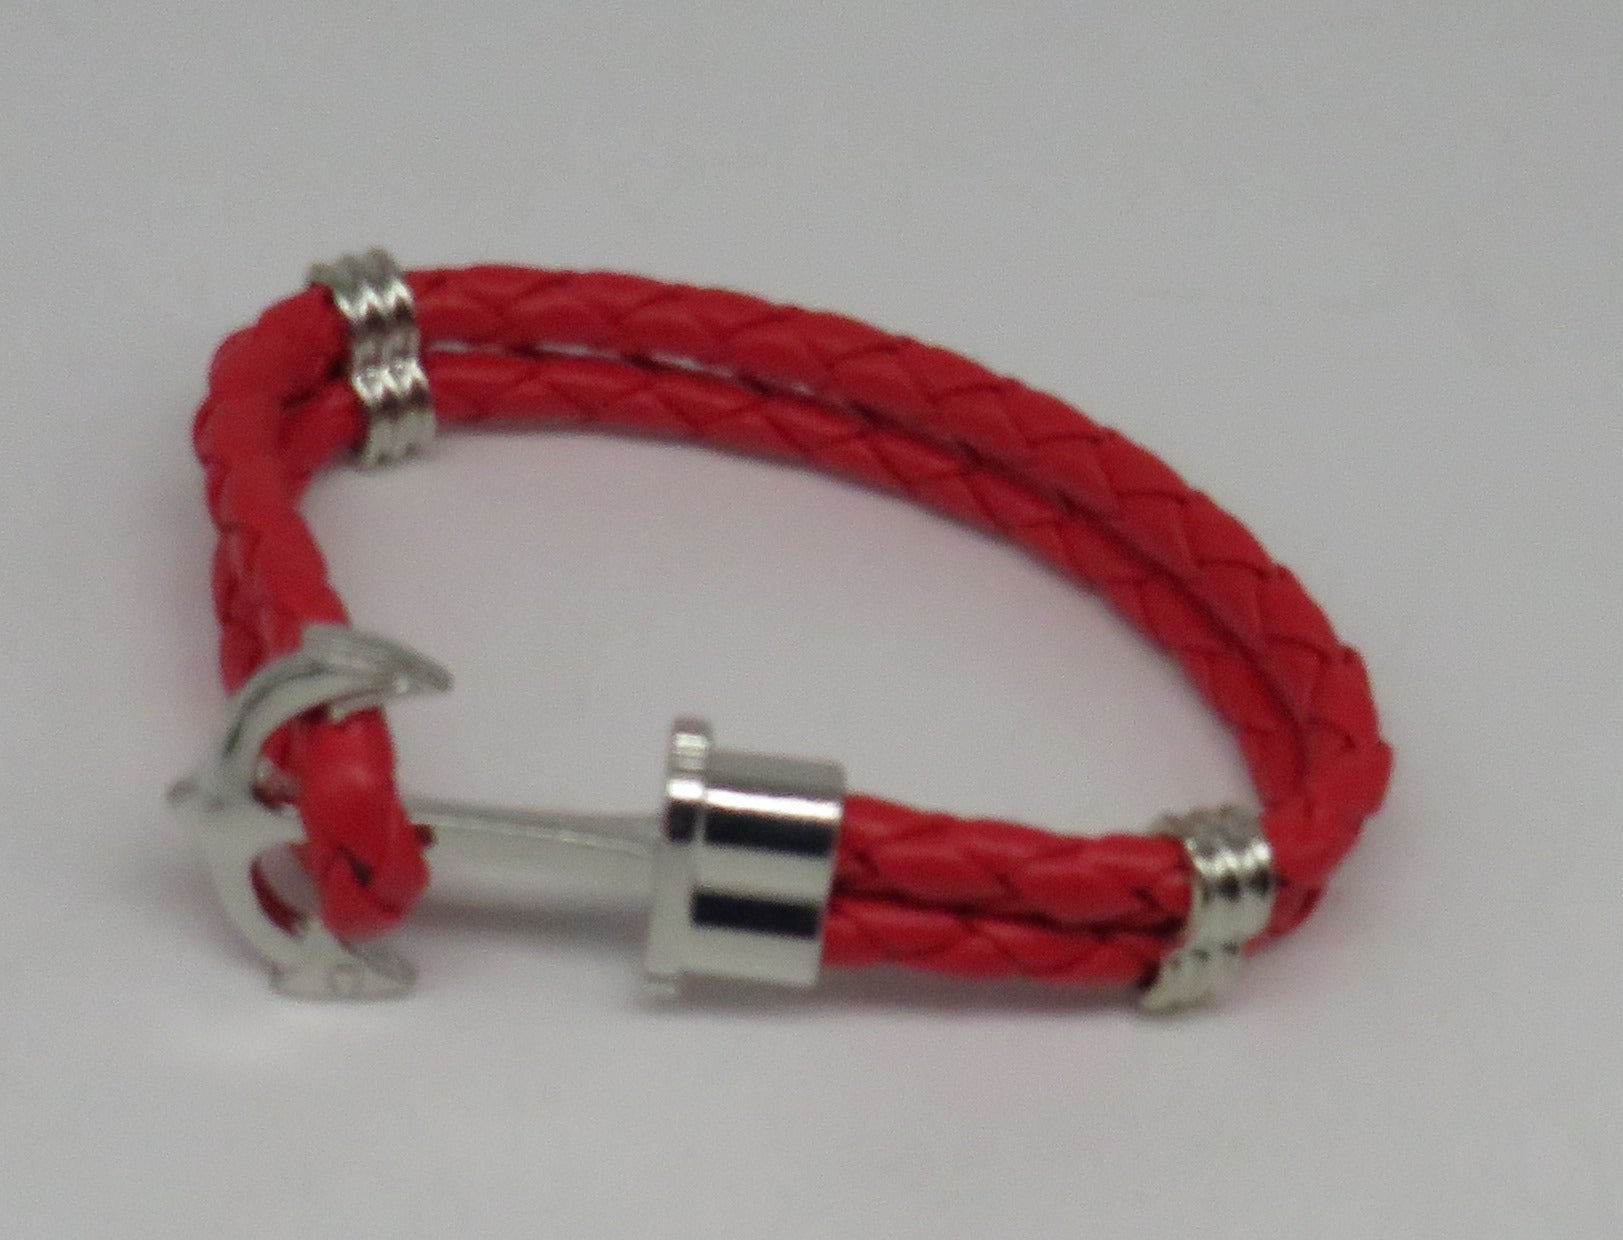 Unisex Leather Handmade Braided Cuff Anchor Bangle Bracelet Wristband Red-Silver